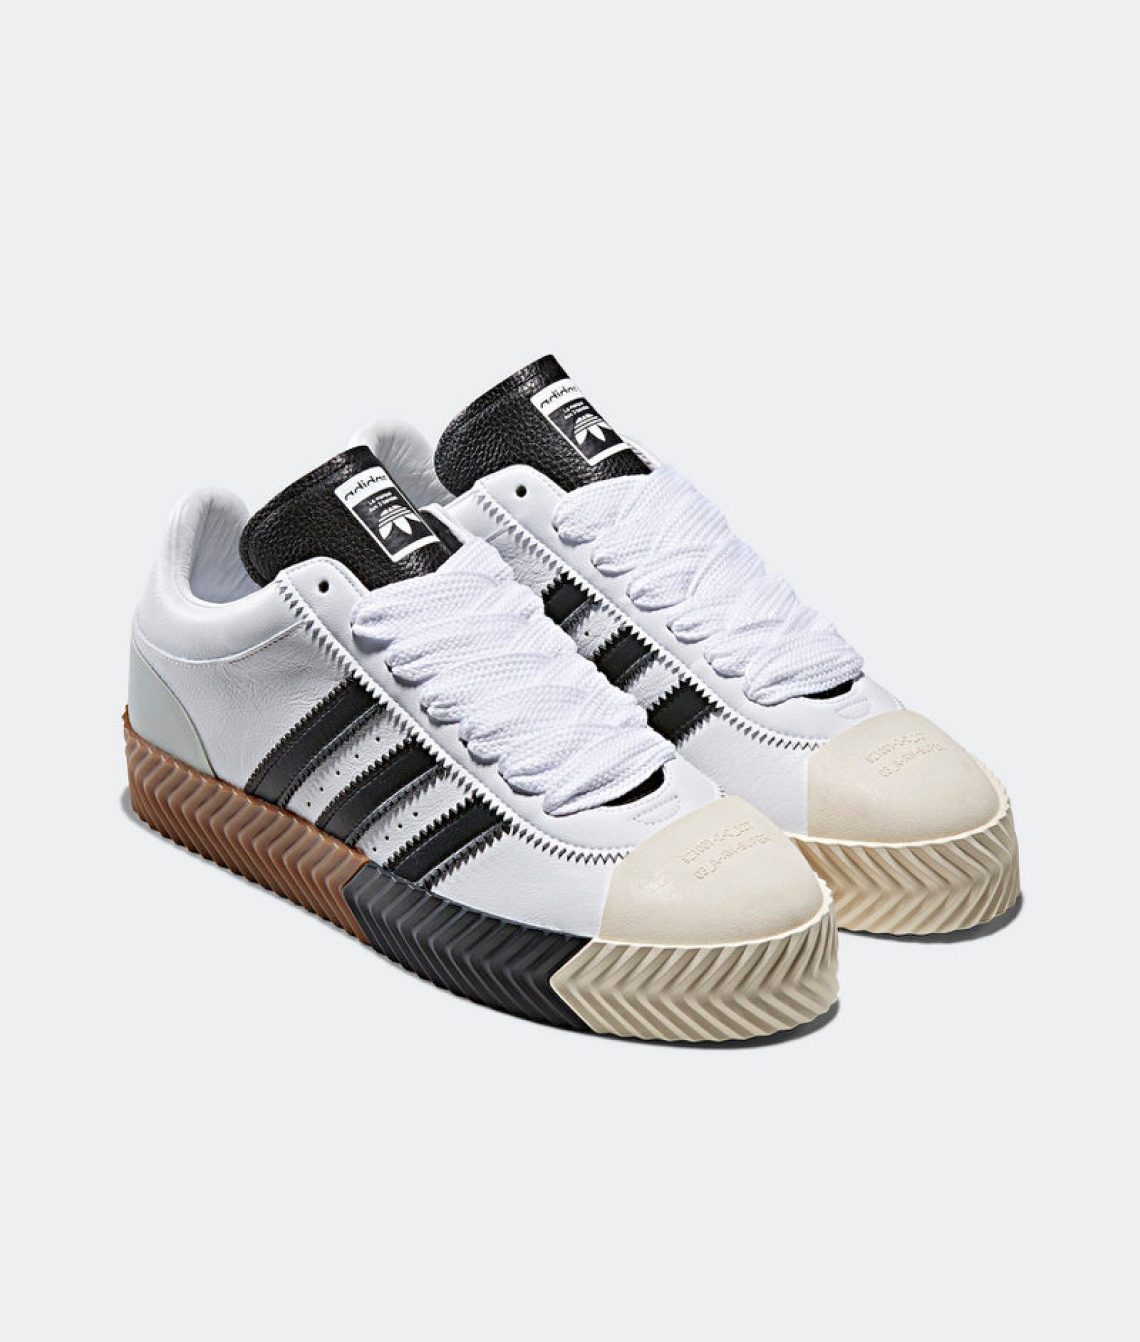 new style 151dc 1ec03 The adidas by Alexander Wang FallWinter 2018 Collection will be available  on November 14th on adidas.com as well as Alexaderwang.com.